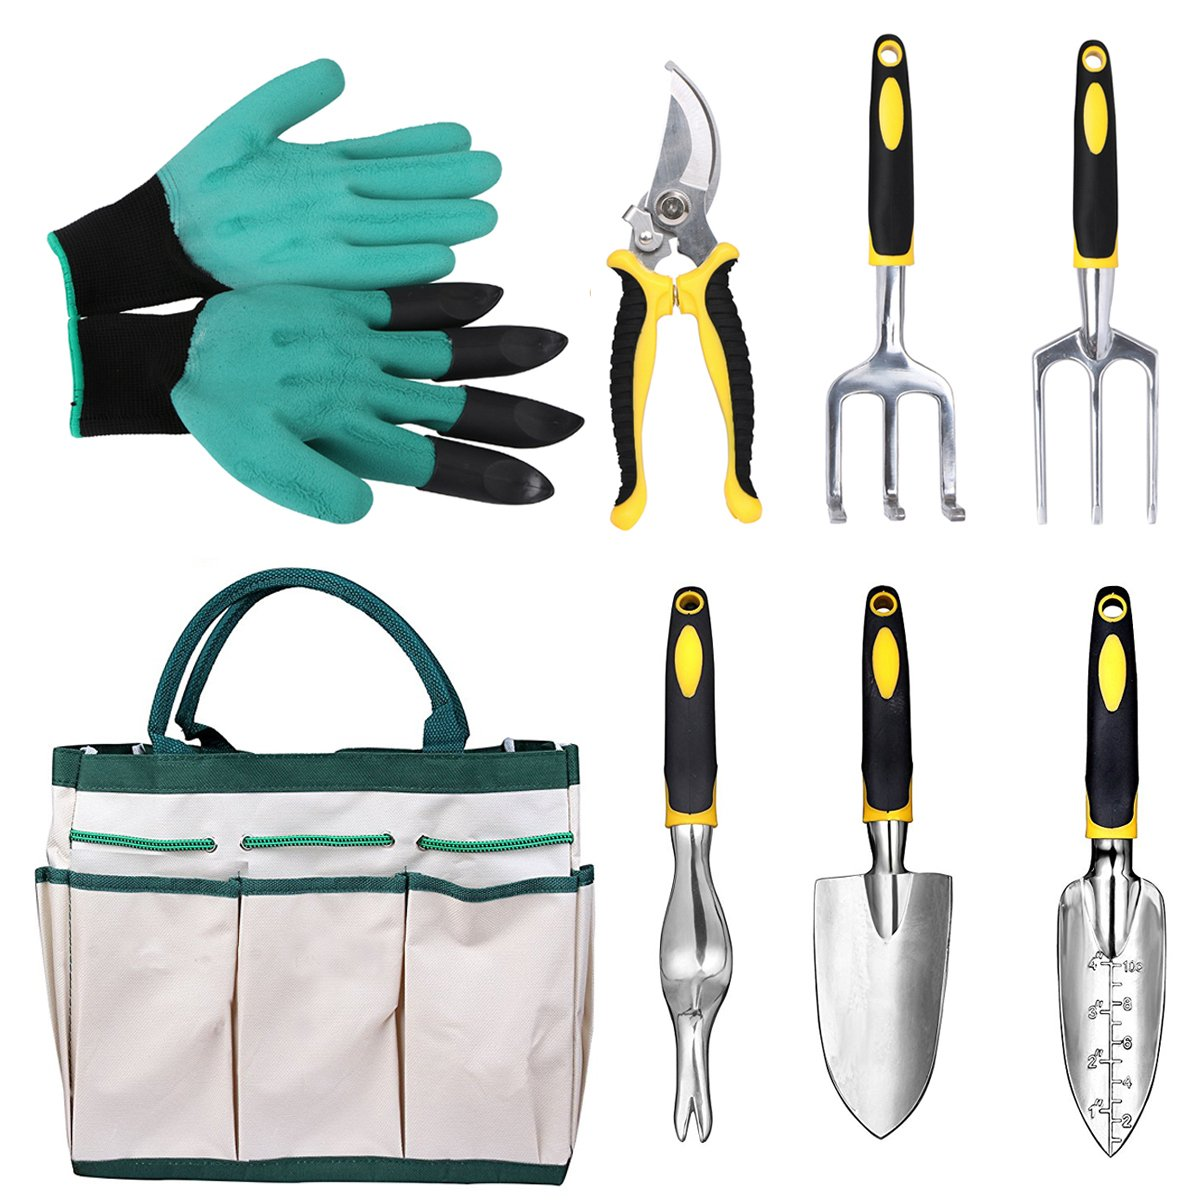 Gardening Tools Garden Tools Set 8 Pieces Gardening Hand Tools with Ergonomic Handles included Trowel Transplanter Cultivator Pruner Weeder Fork Garden Genie Gloves and Canvas Tool Bag, Aunifun